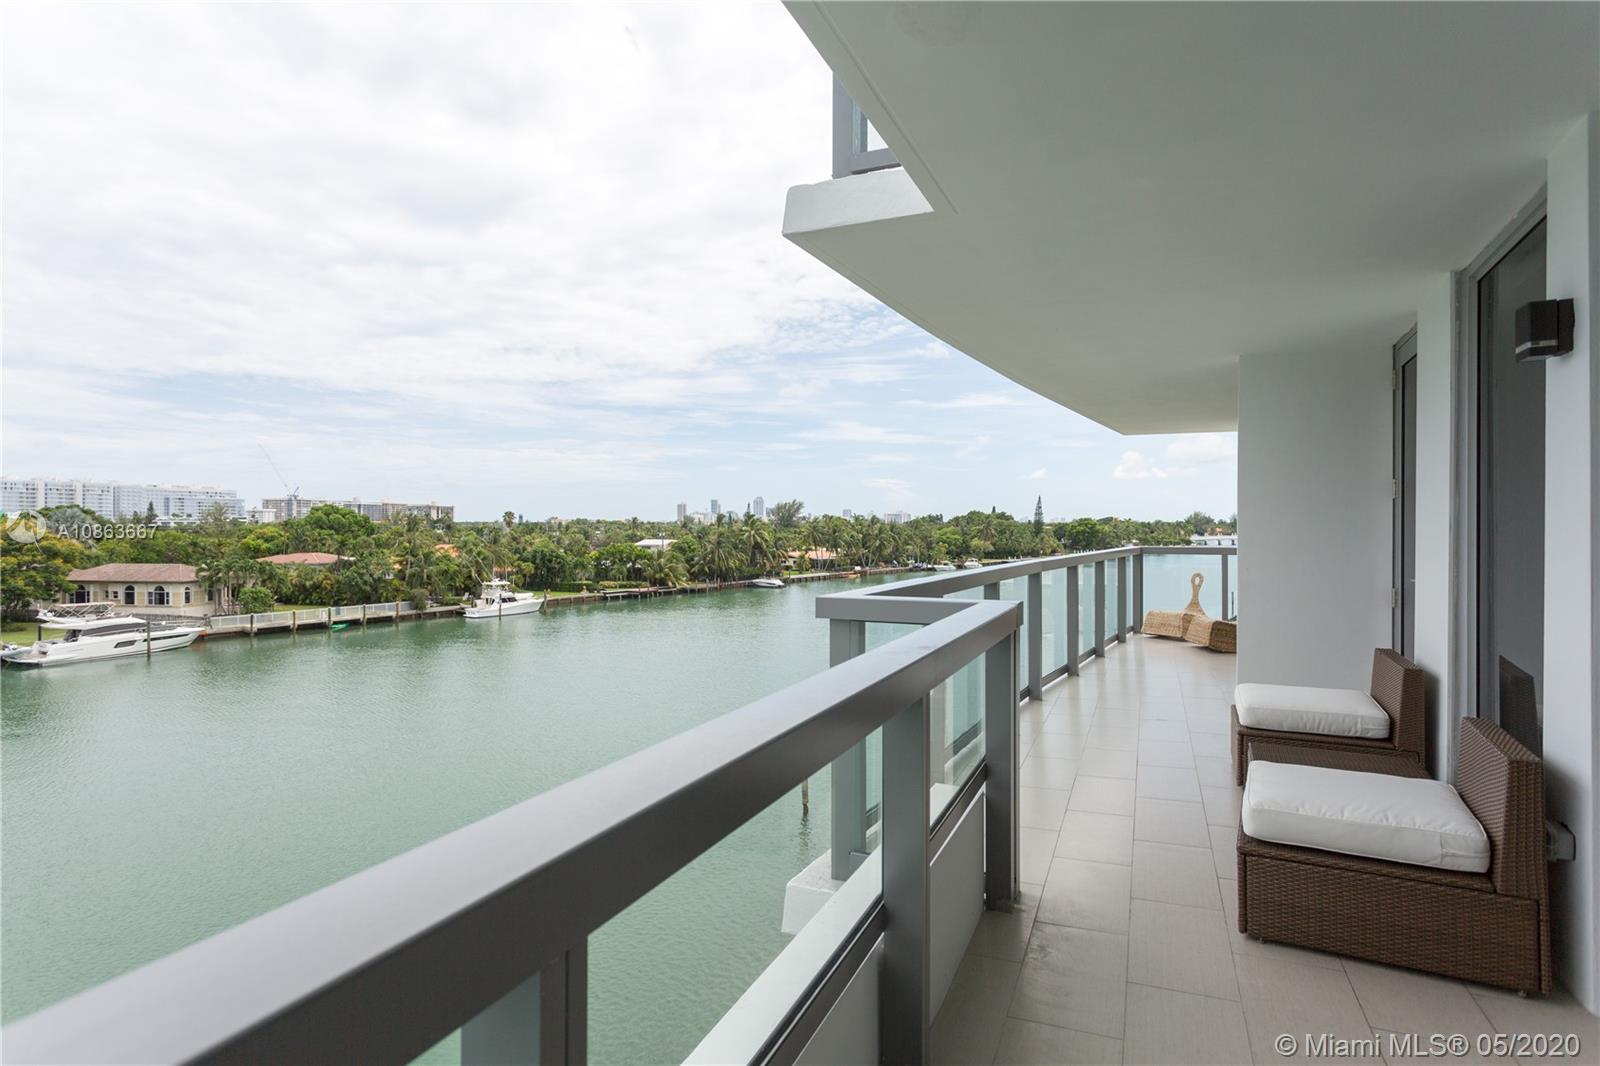 Ivory Condominium at Bay Harbor Islands Florida. almost a new Construction, 2017, Corner unit with Amazing Intercostal views. 2 bedrooms 2 baths, 1,303 Sqft, large balcony. A beautiful home or a great investment property, the city allows this building short term rentals. Kitchen, living and two bedrooms looking the Intercostal and Bal Harbour city , walking distance from Bal Harbour mall, beaches and restaurants. Gym, Pool at the terrace, 2 cover garage spaces. Close to A Schools.